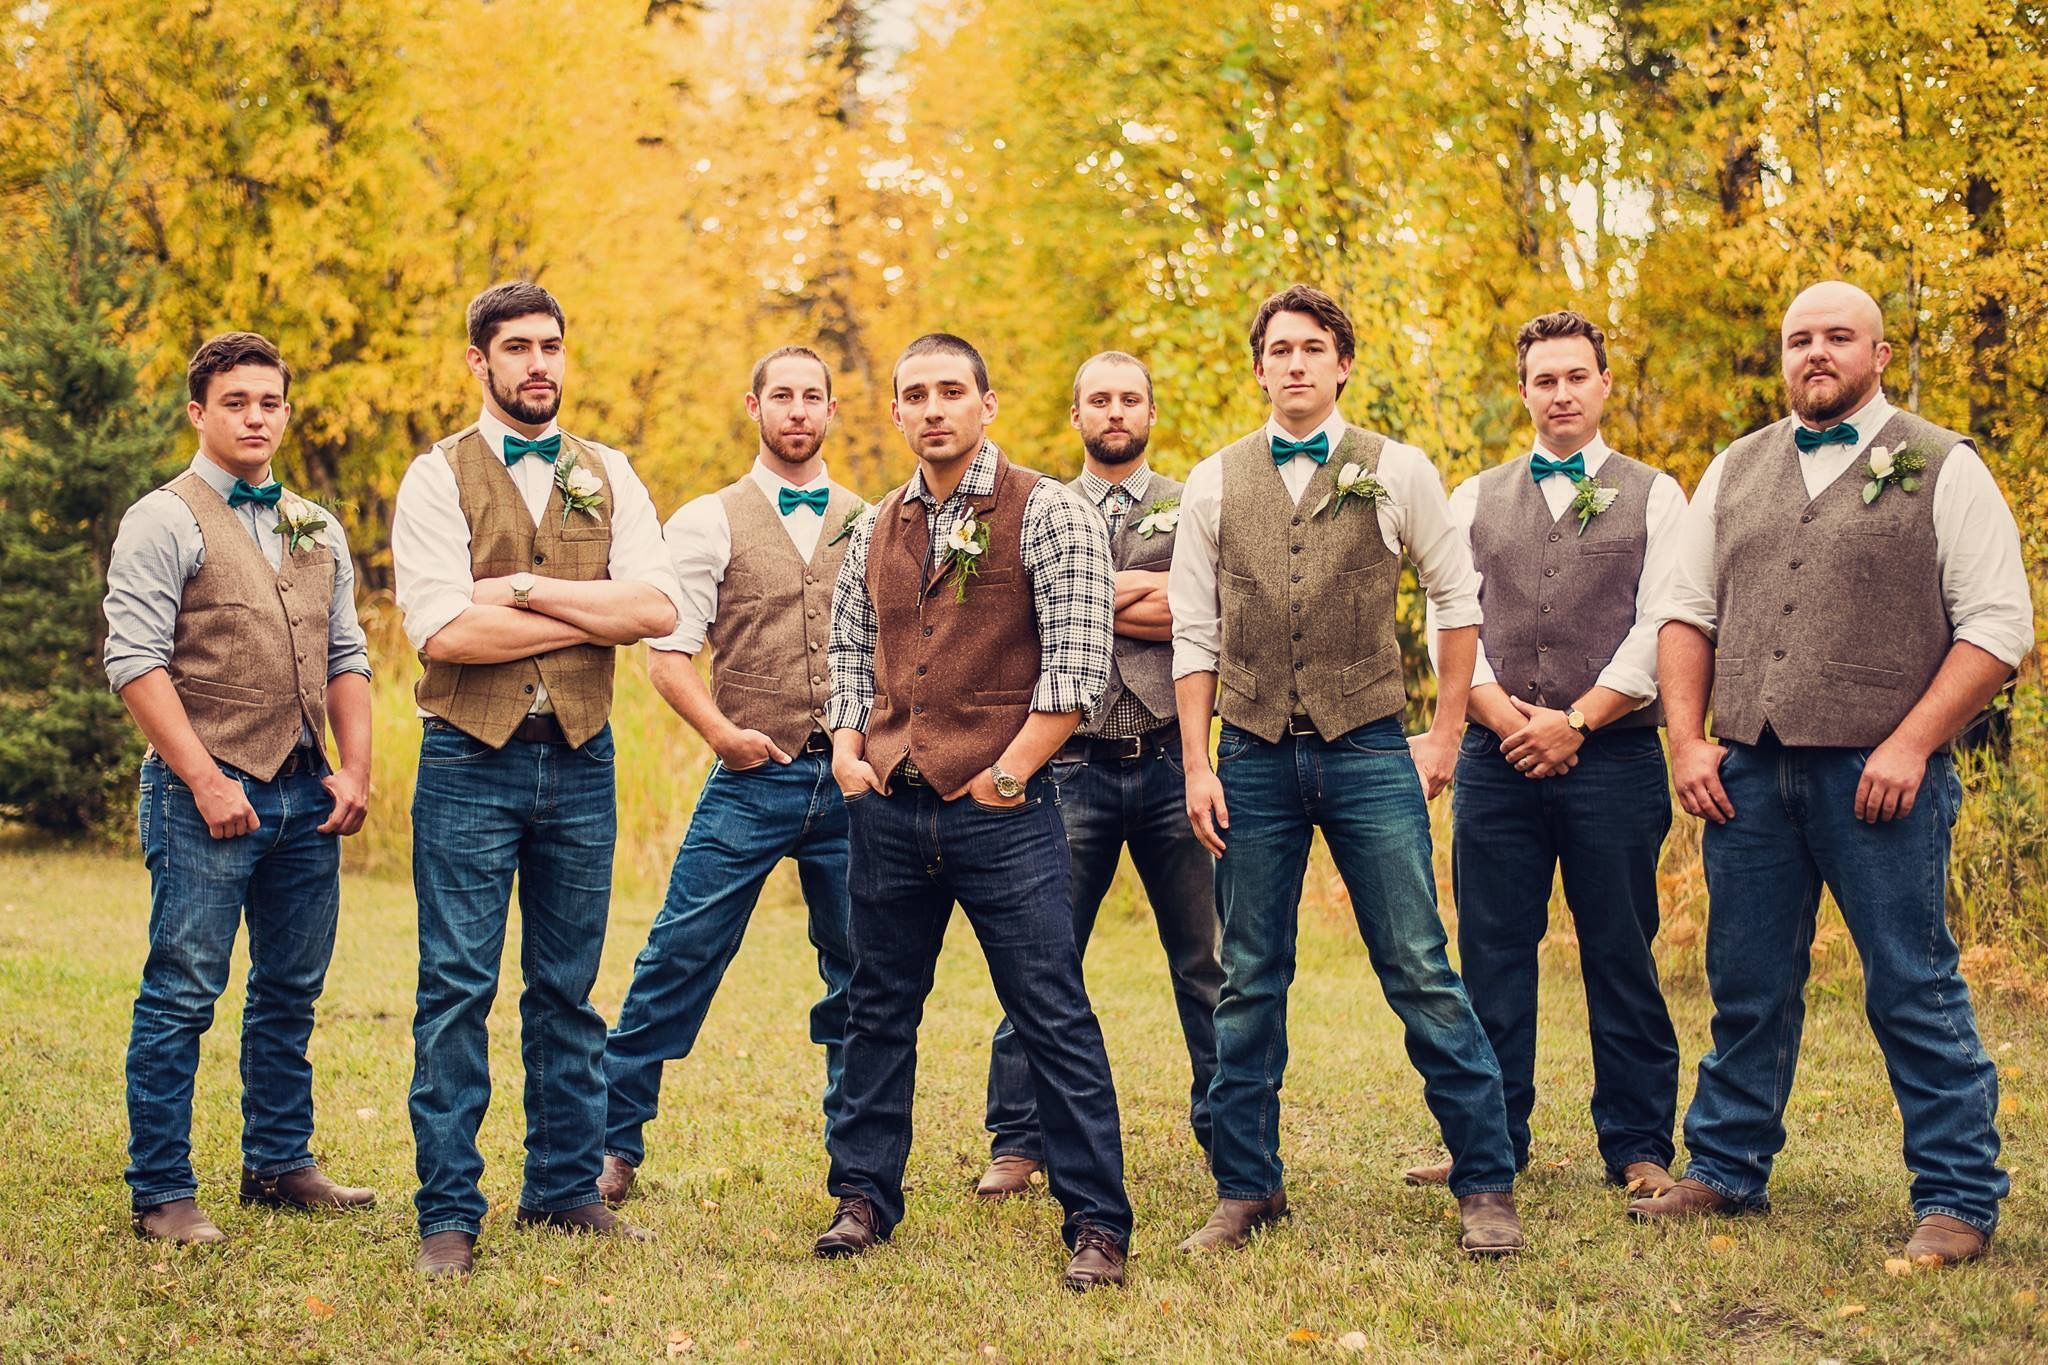 Wedding Photo Wedding Inspiration Fall Wedding Vintage Wedding Rustic Wedding Wedding Groomsmen Attire Rustic Wedding Groomsmen Country Wedding Groomsmen